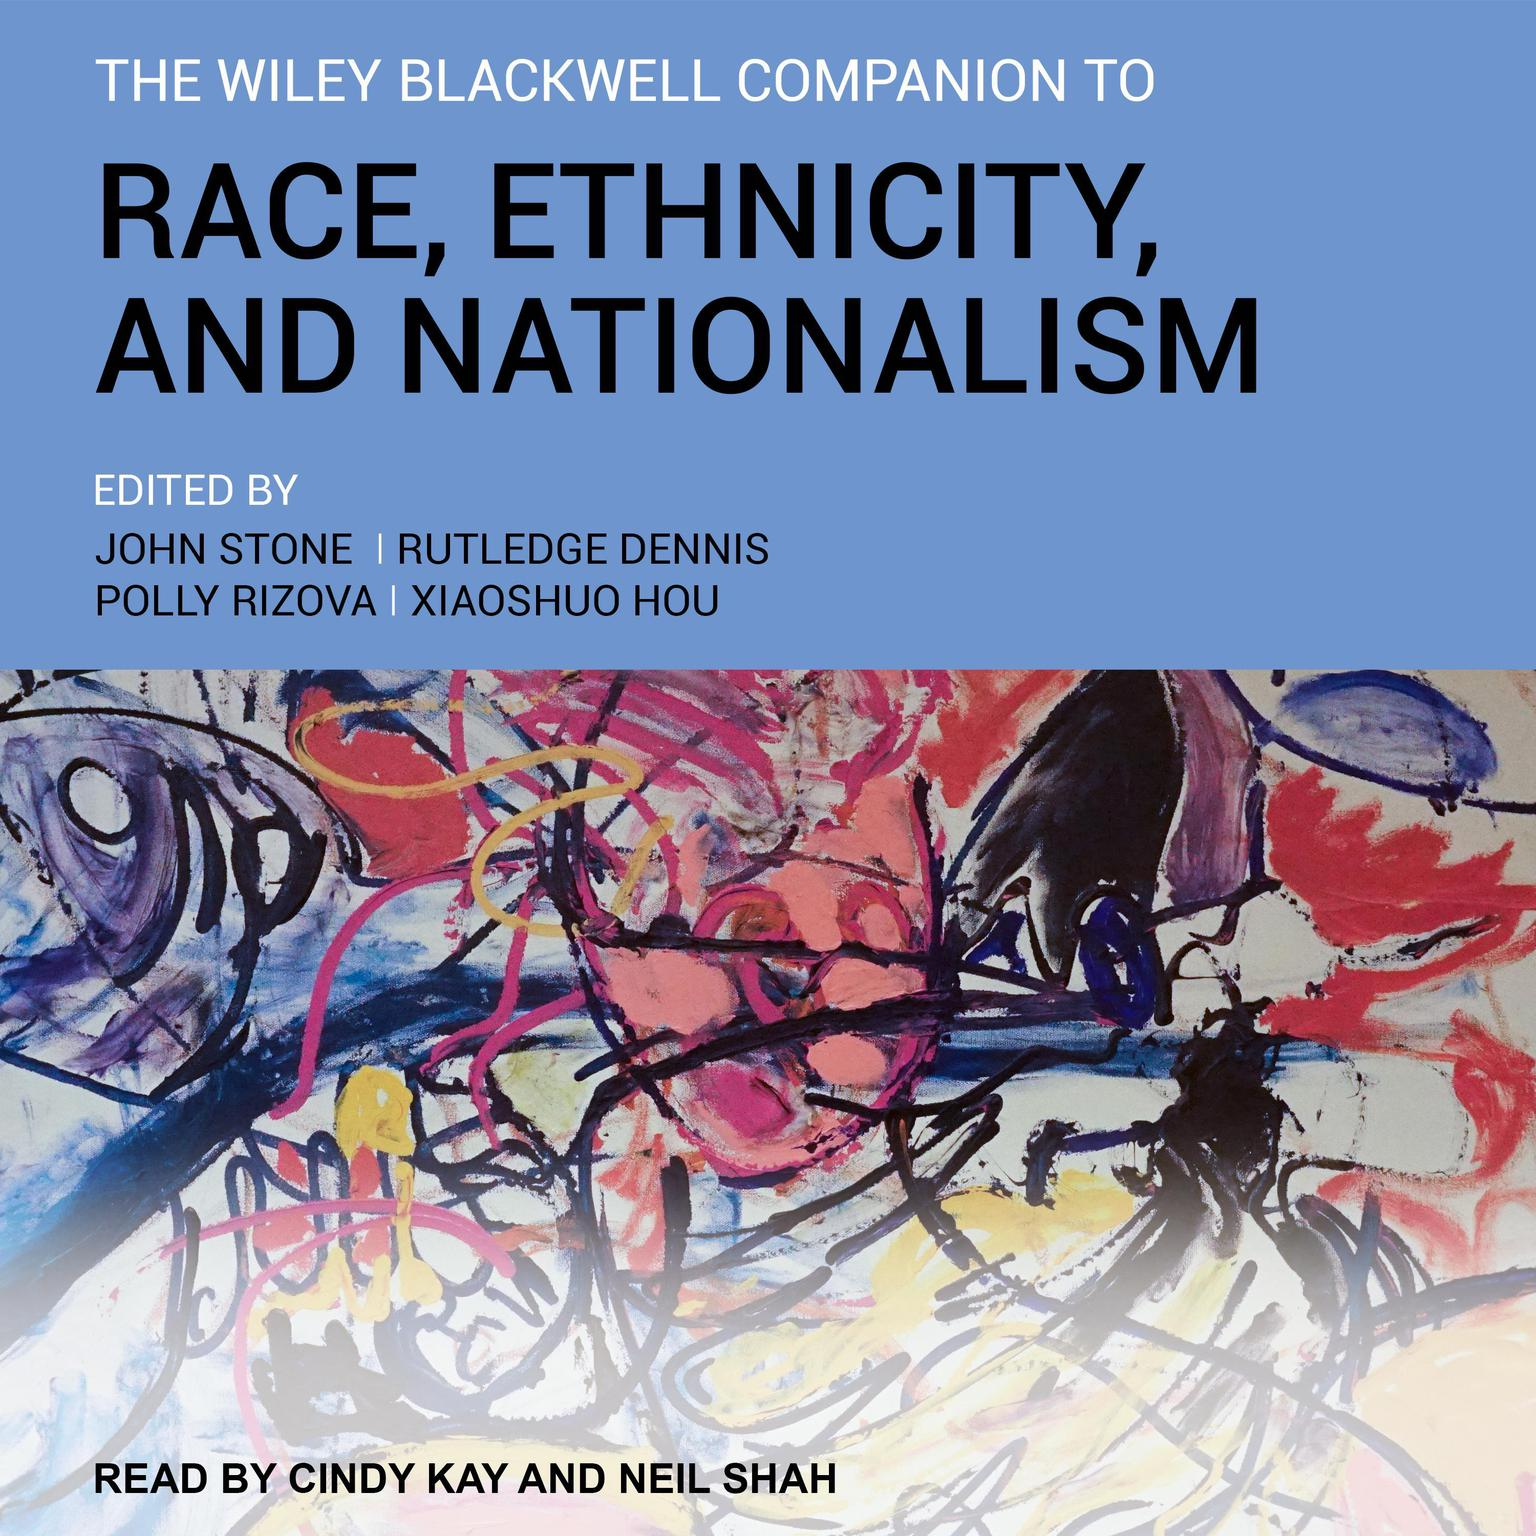 The Wiley Blackwell Companion to Race, Ethnicity, and Nationalism Audiobook, by various authors